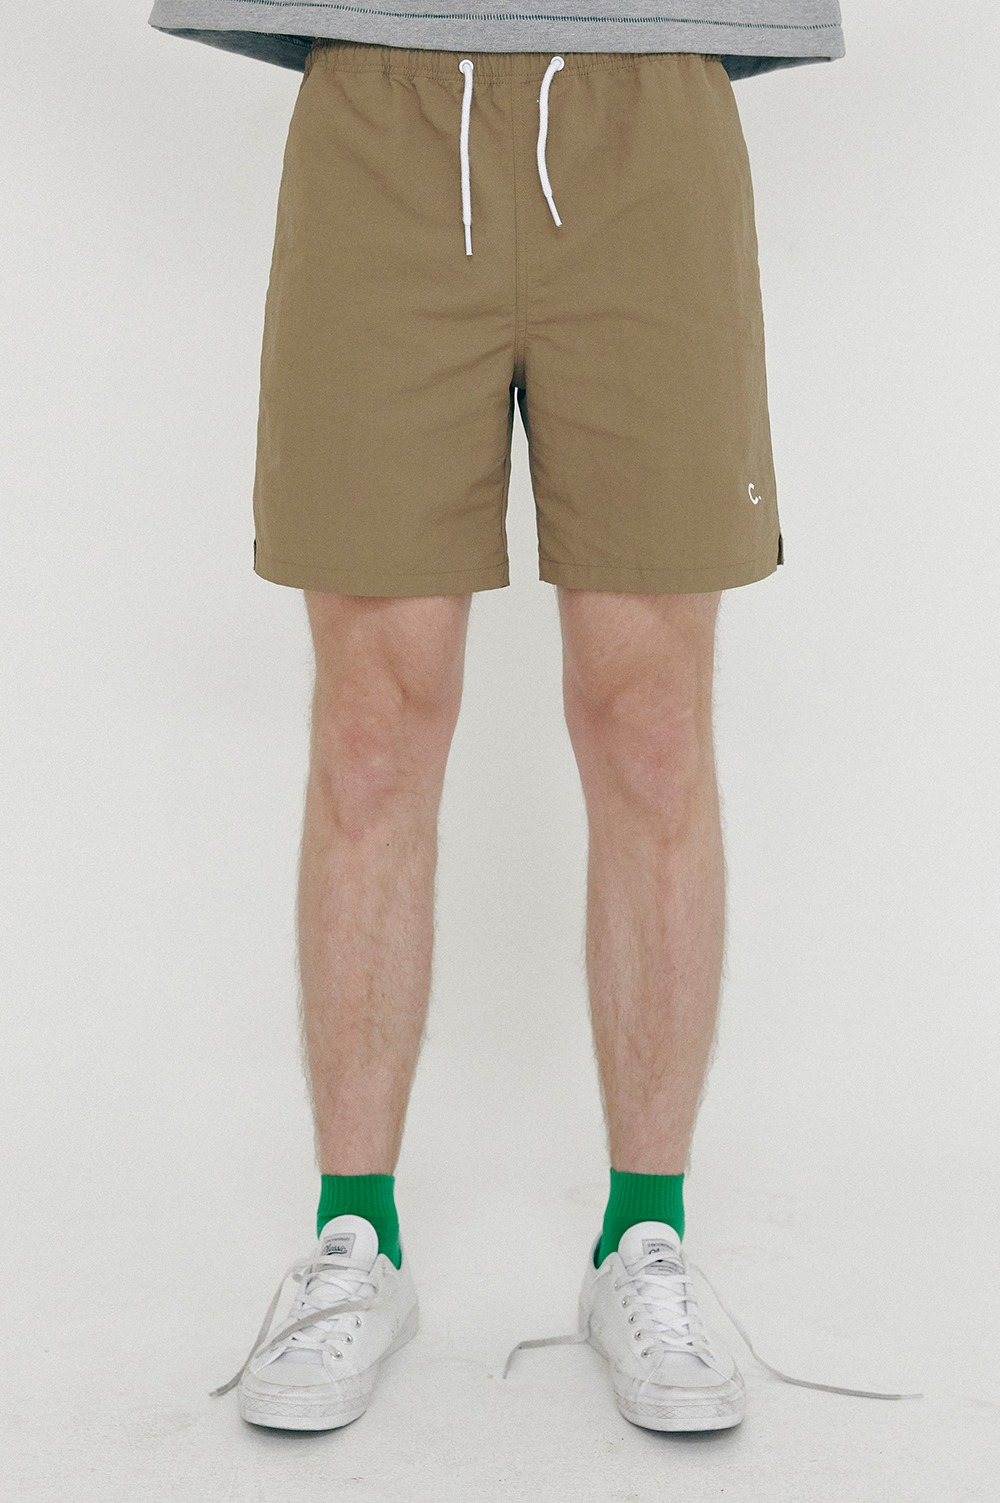 [SS21 CLOVE] New Summer Shorts_Men Khaki